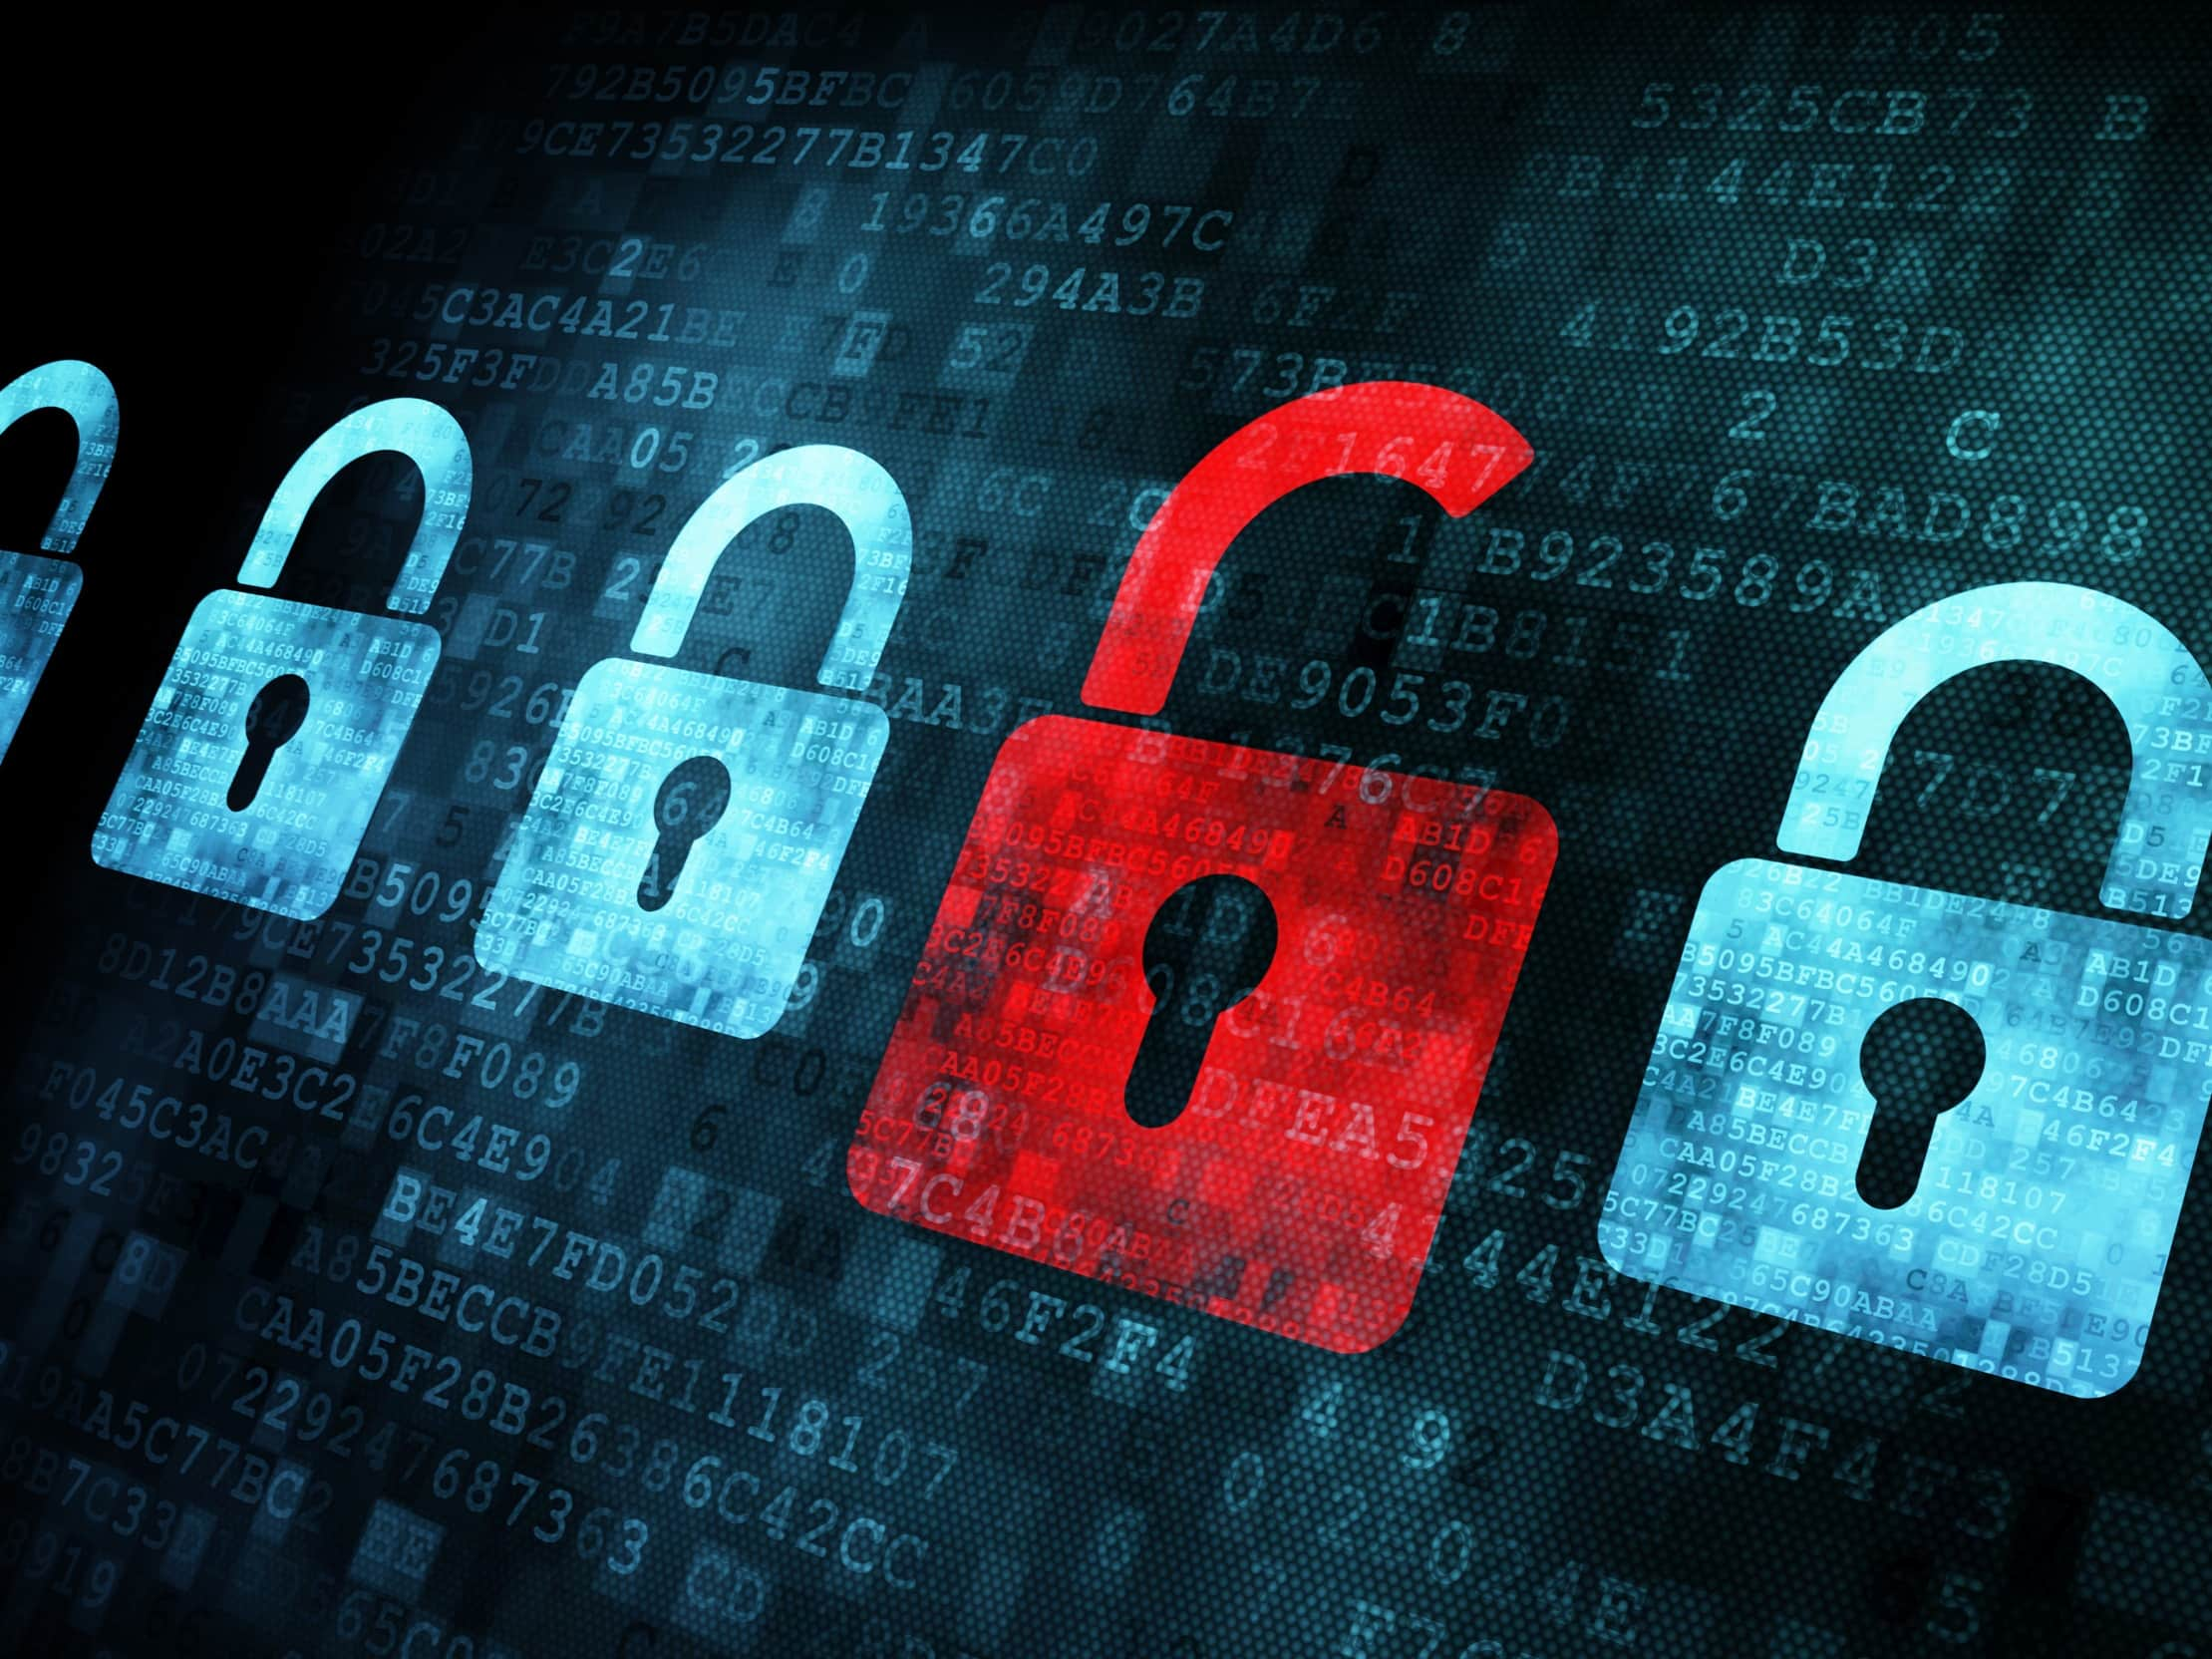 content/en-ae/images/repository/isc/types-of-cybercrimes-tips.jpg